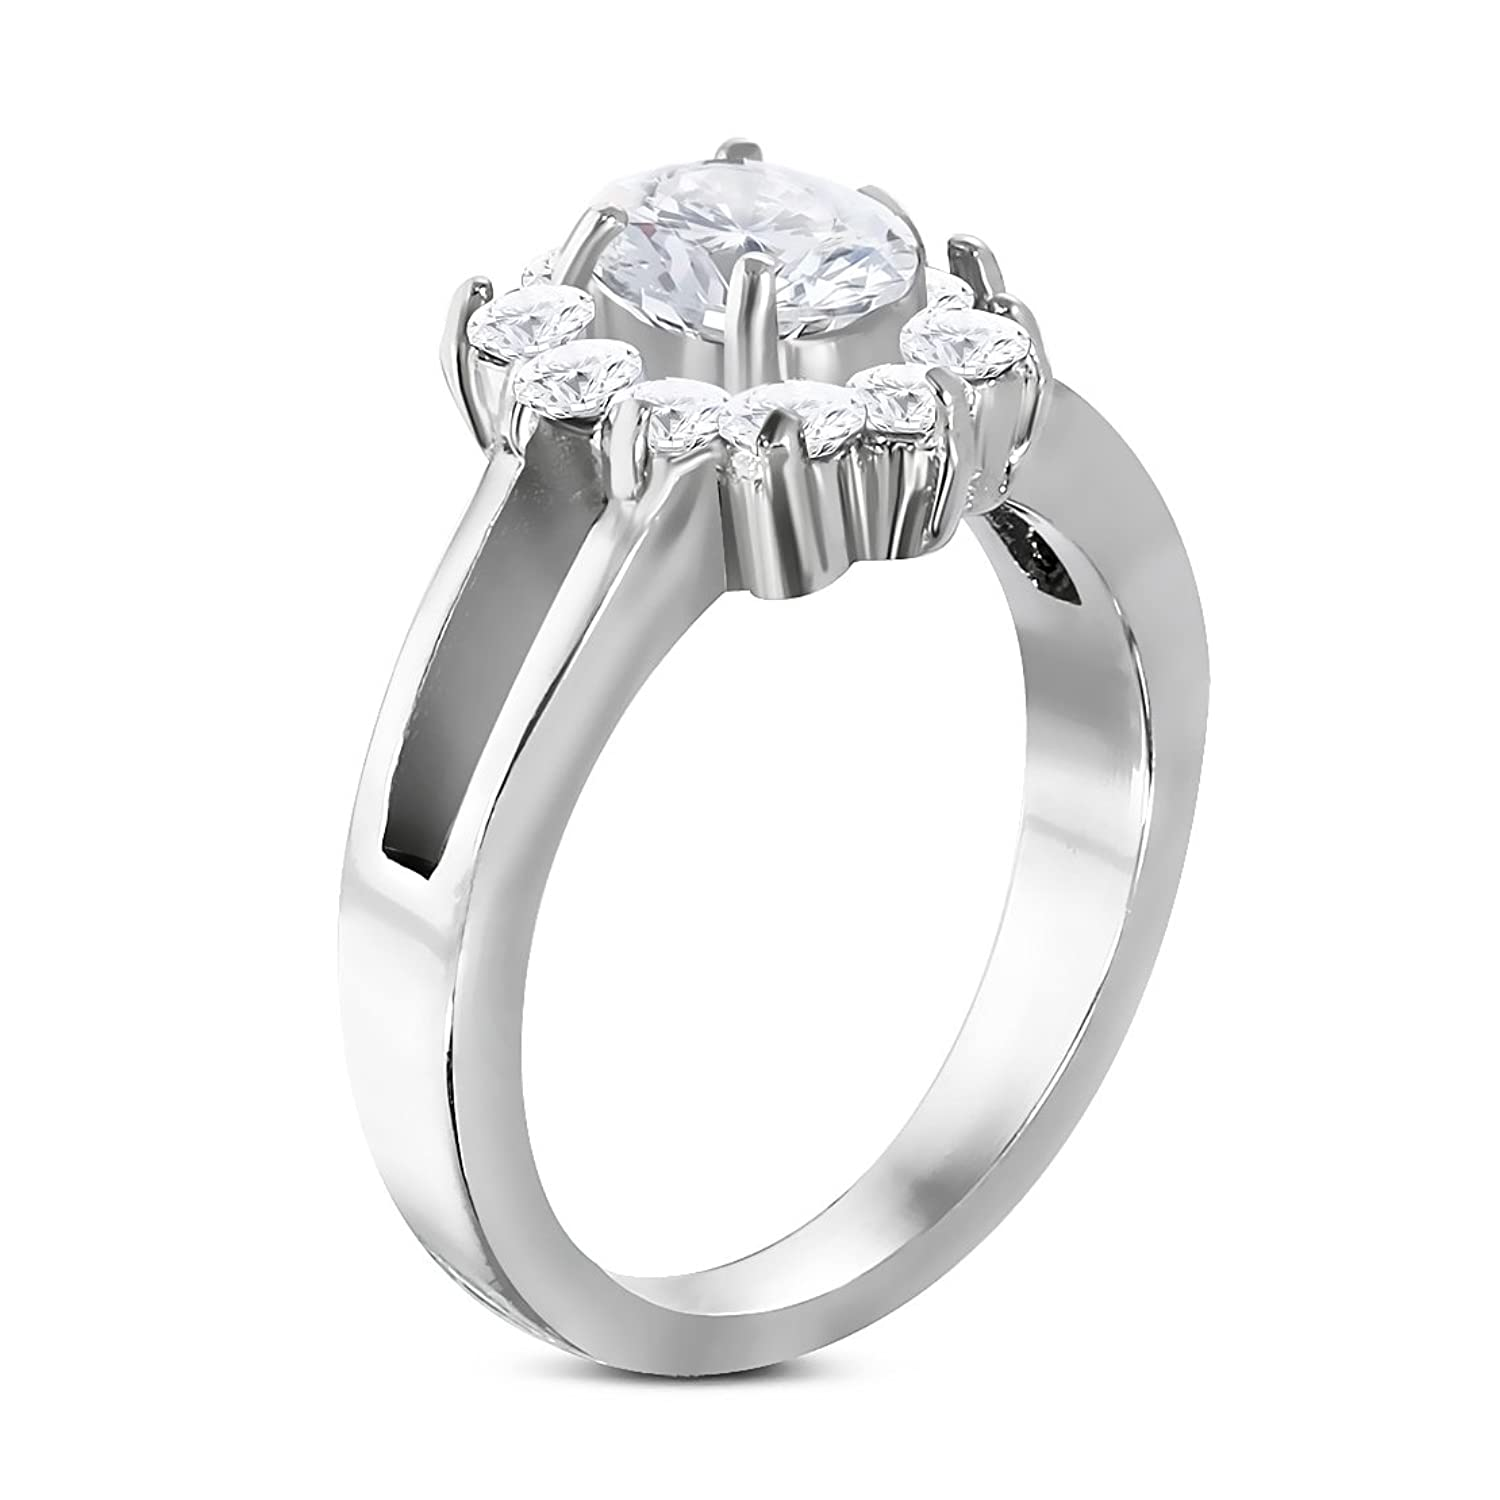 Stainless Steel Prong-Set Flower Fancy Ring with Clear CZ